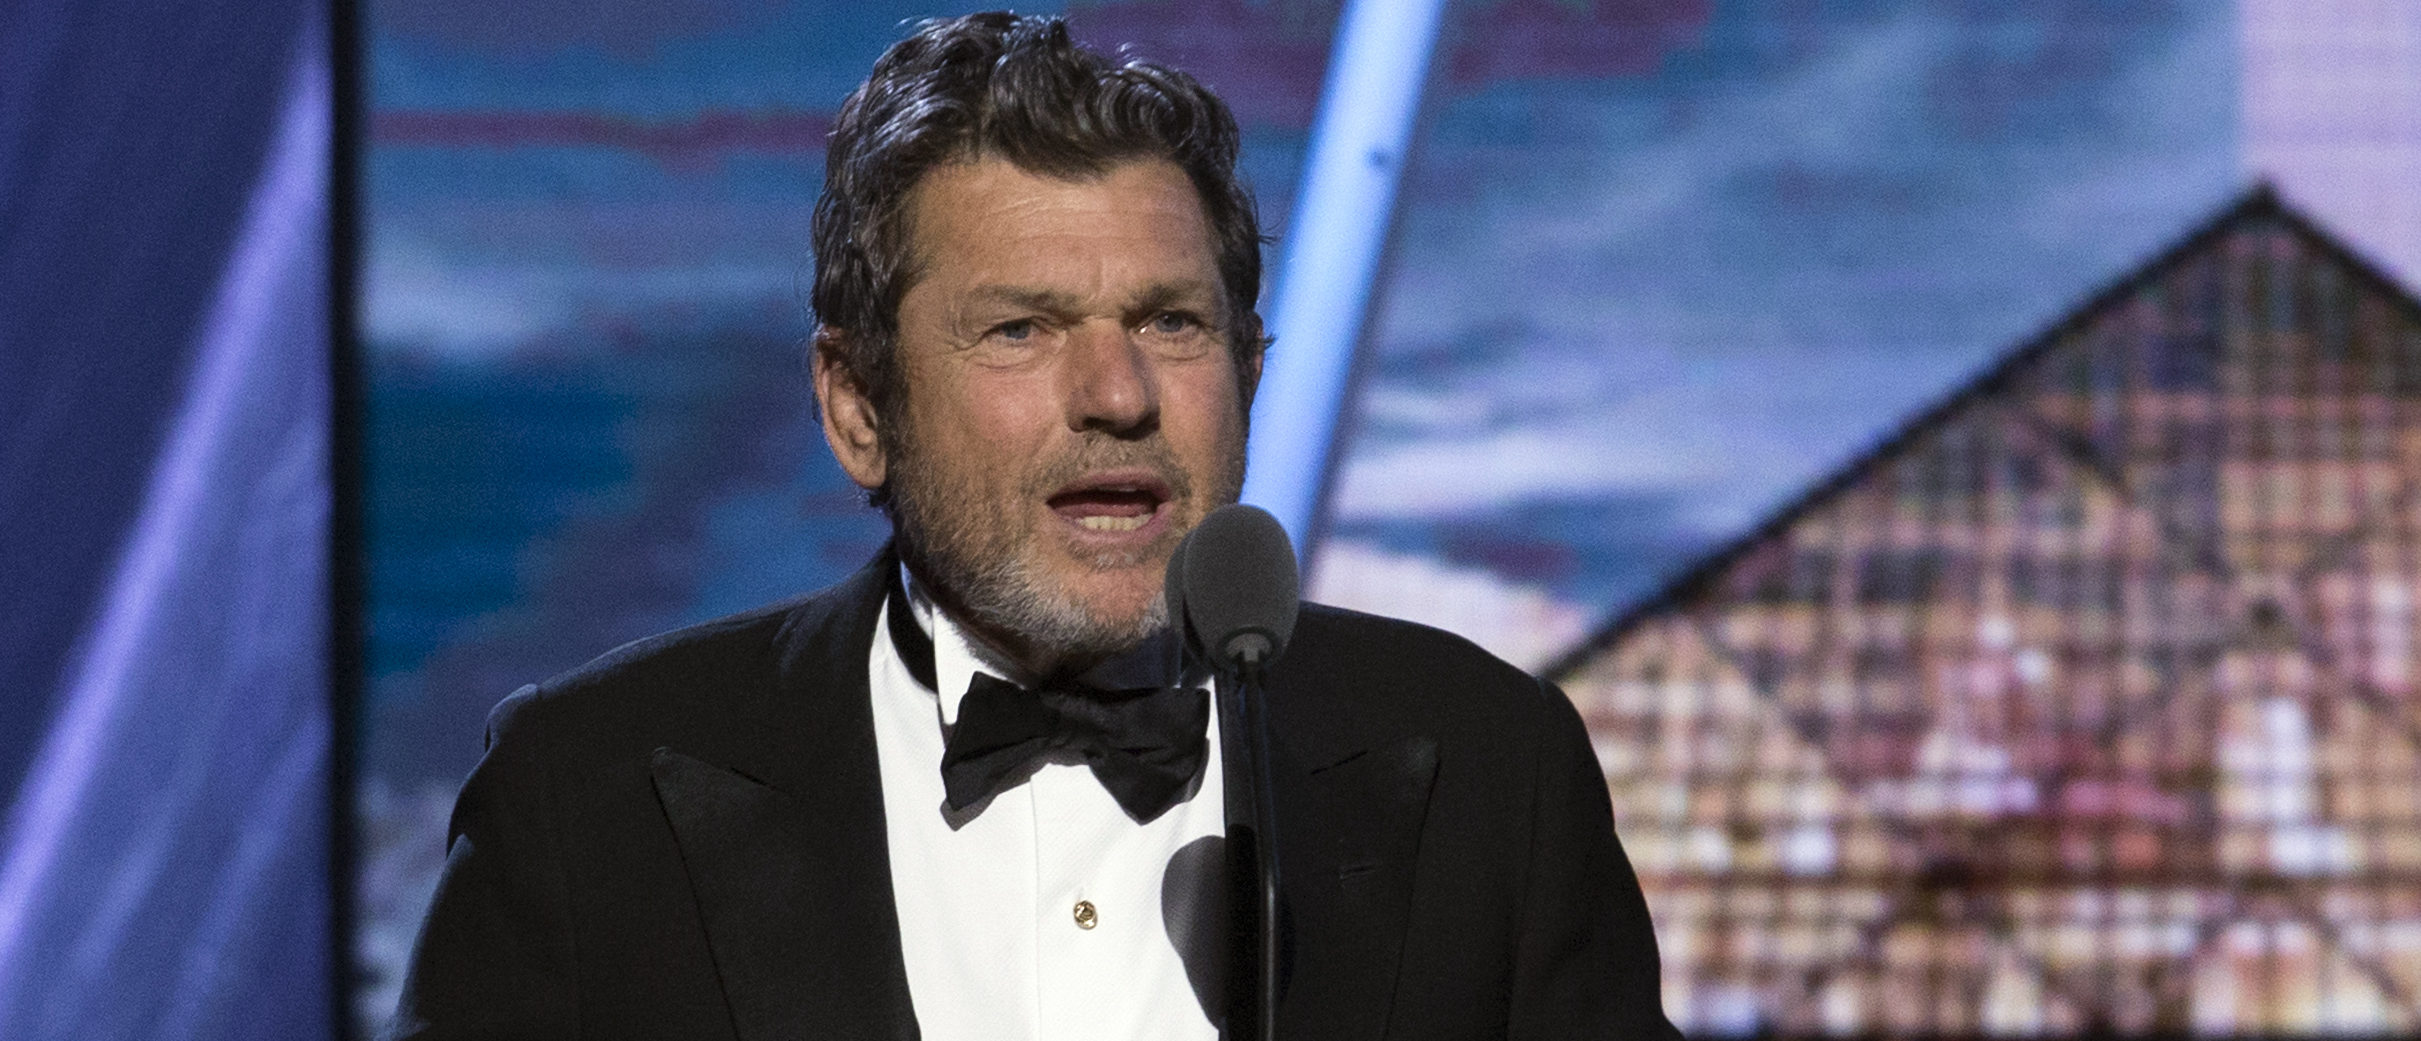 Jann Wenner, co-founder and publisher of Rolling Stone magazine, speaks during the 29th annual Rock and Roll Hall of Fame Induction Ceremony at the Barclays Center in Brooklyn, New York April 10, 2014. REUTERS/Lucas Jackson